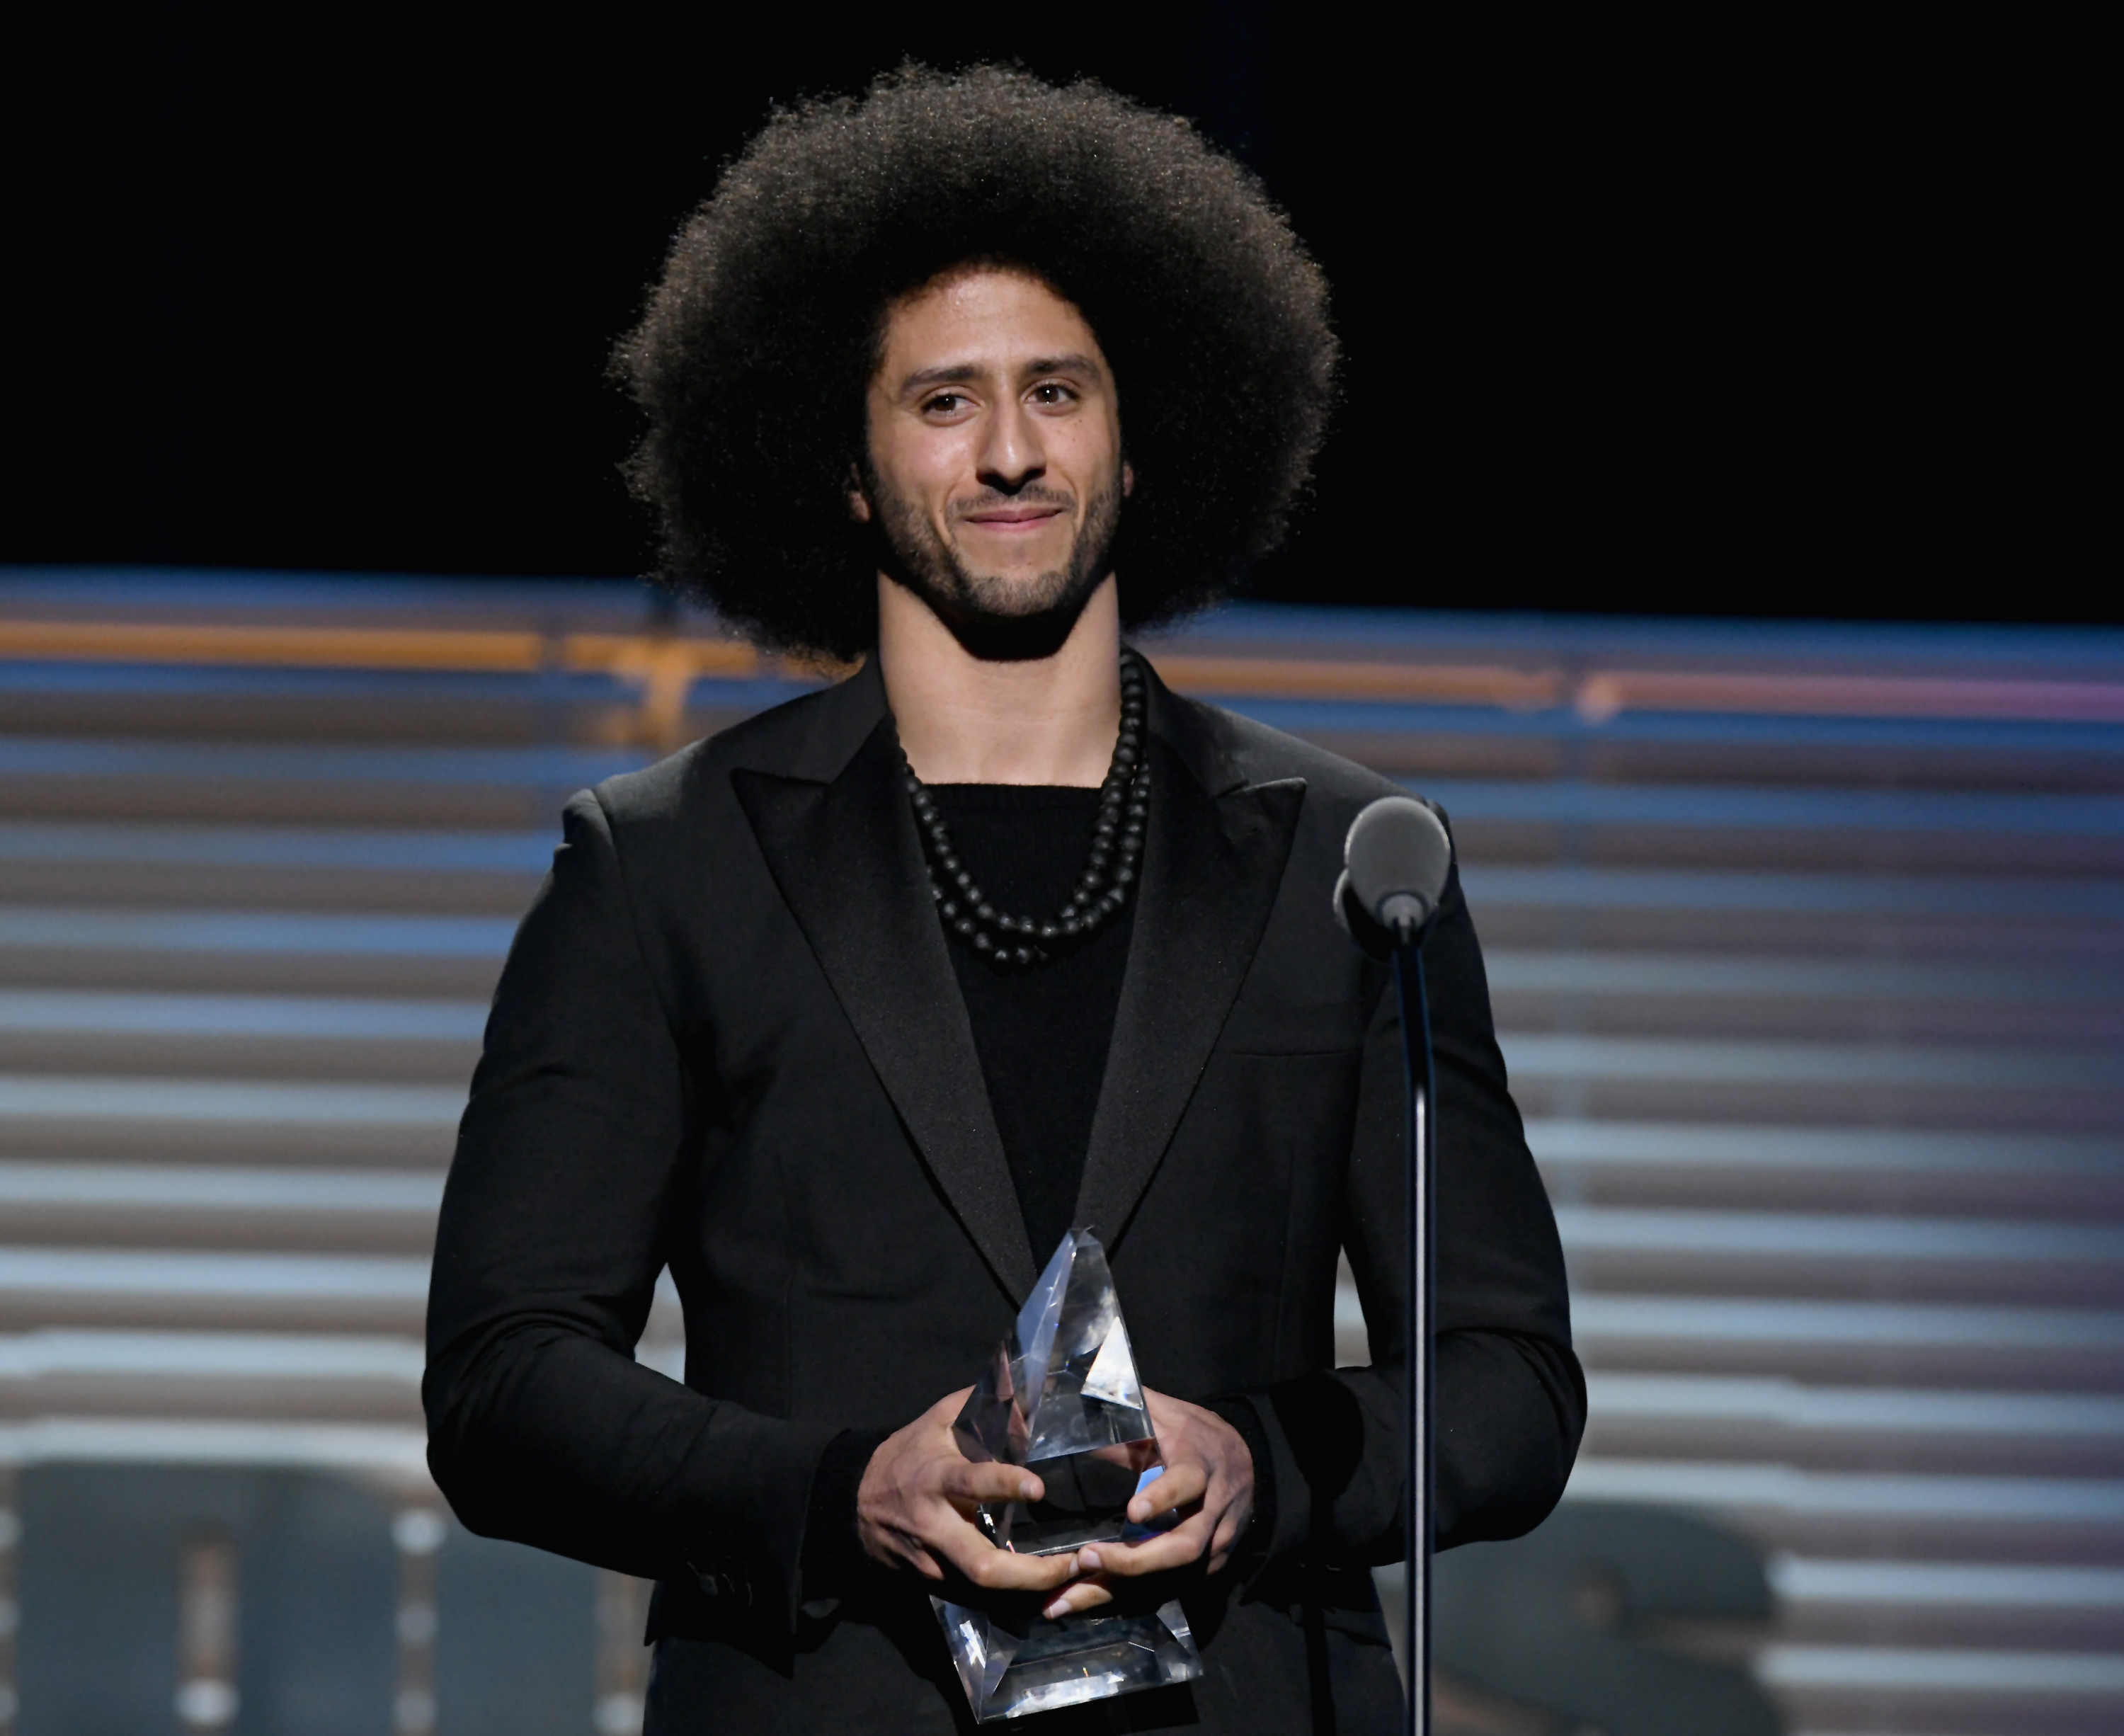 Colin Kaepernick receives the SI Muhammad Ali Legacy Award during SPORTS ILLUSTRATED 2017 Sportsperson of the Year Show on December 5, 2017, at Barclays Center in New York City. (Getty Images)